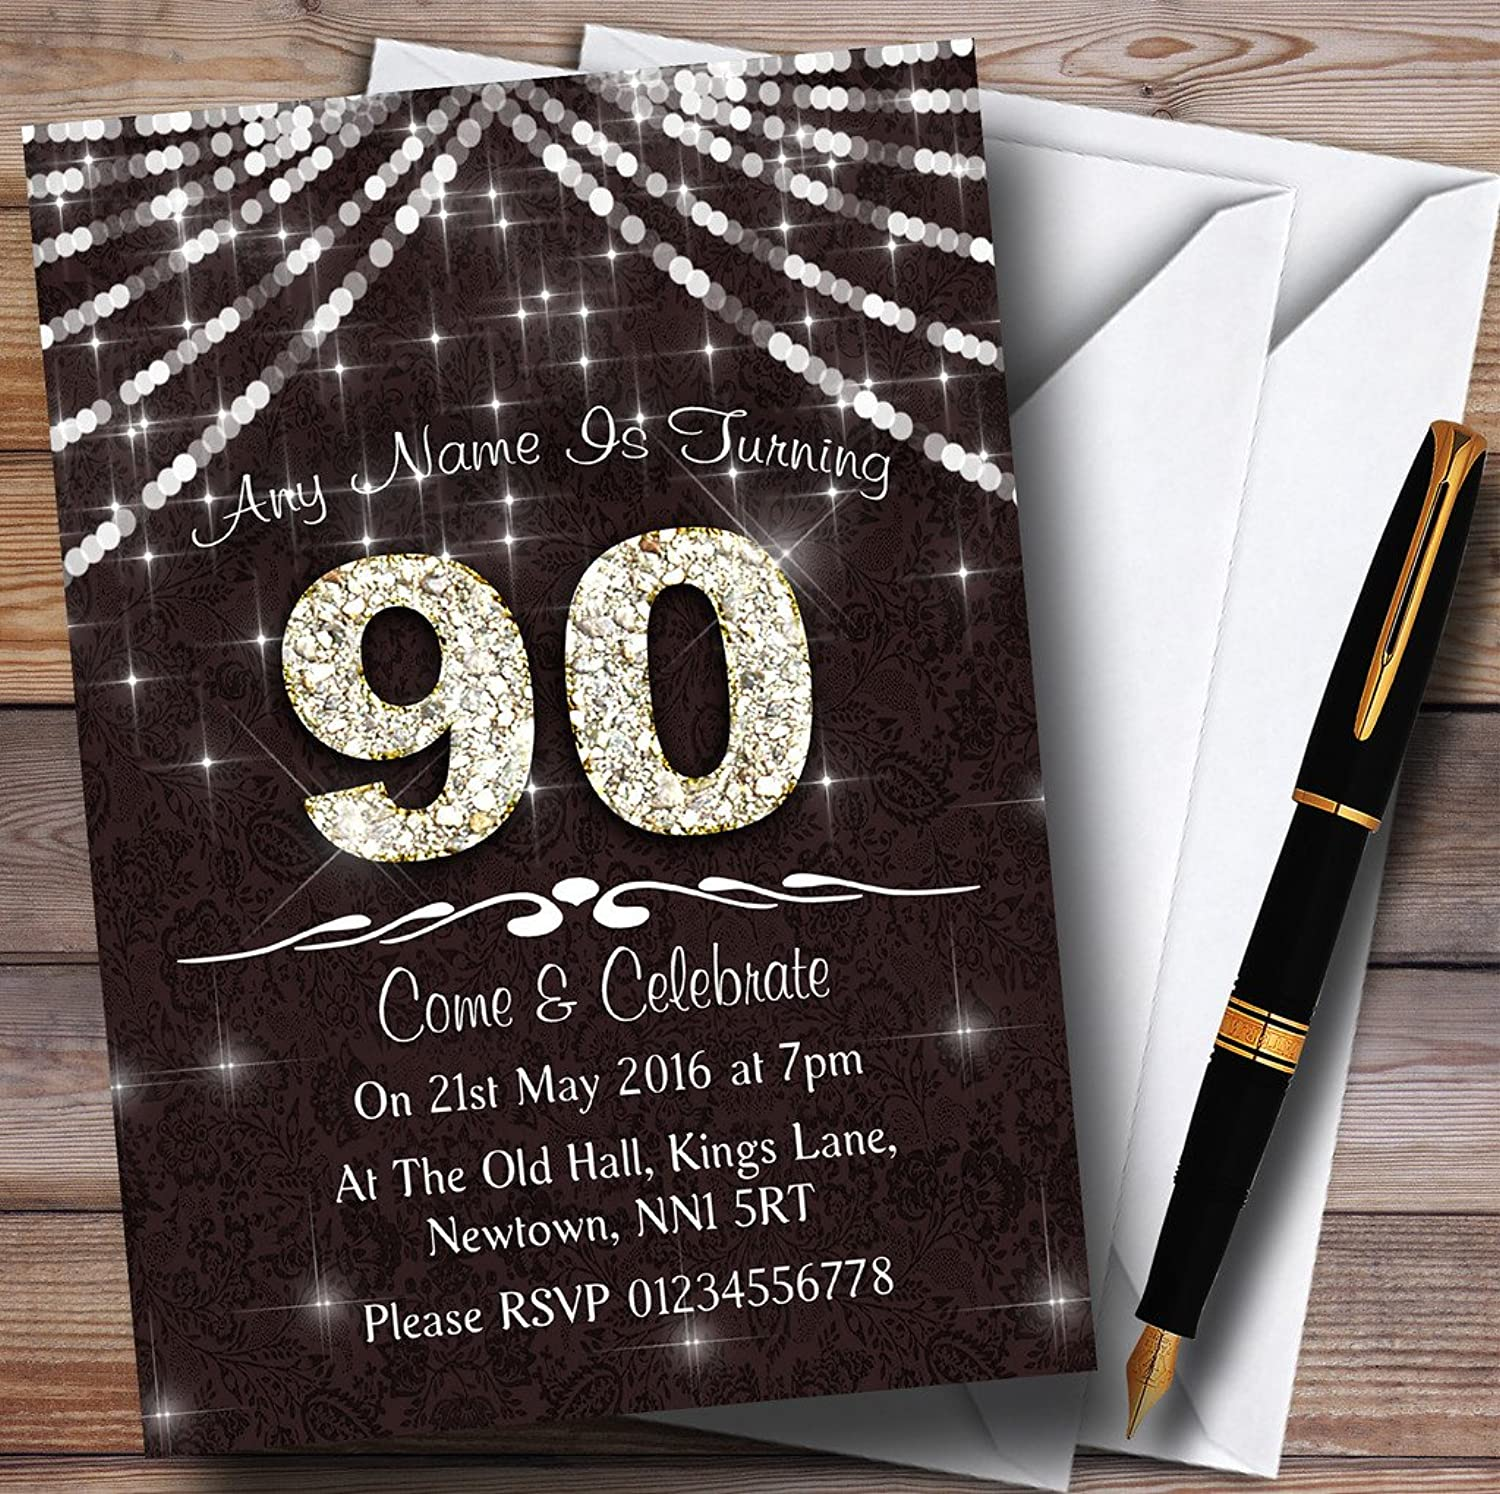 90Th Brown & White Bling Sparkle Birthday Party Personalised Invitations   Invites & Envelopes